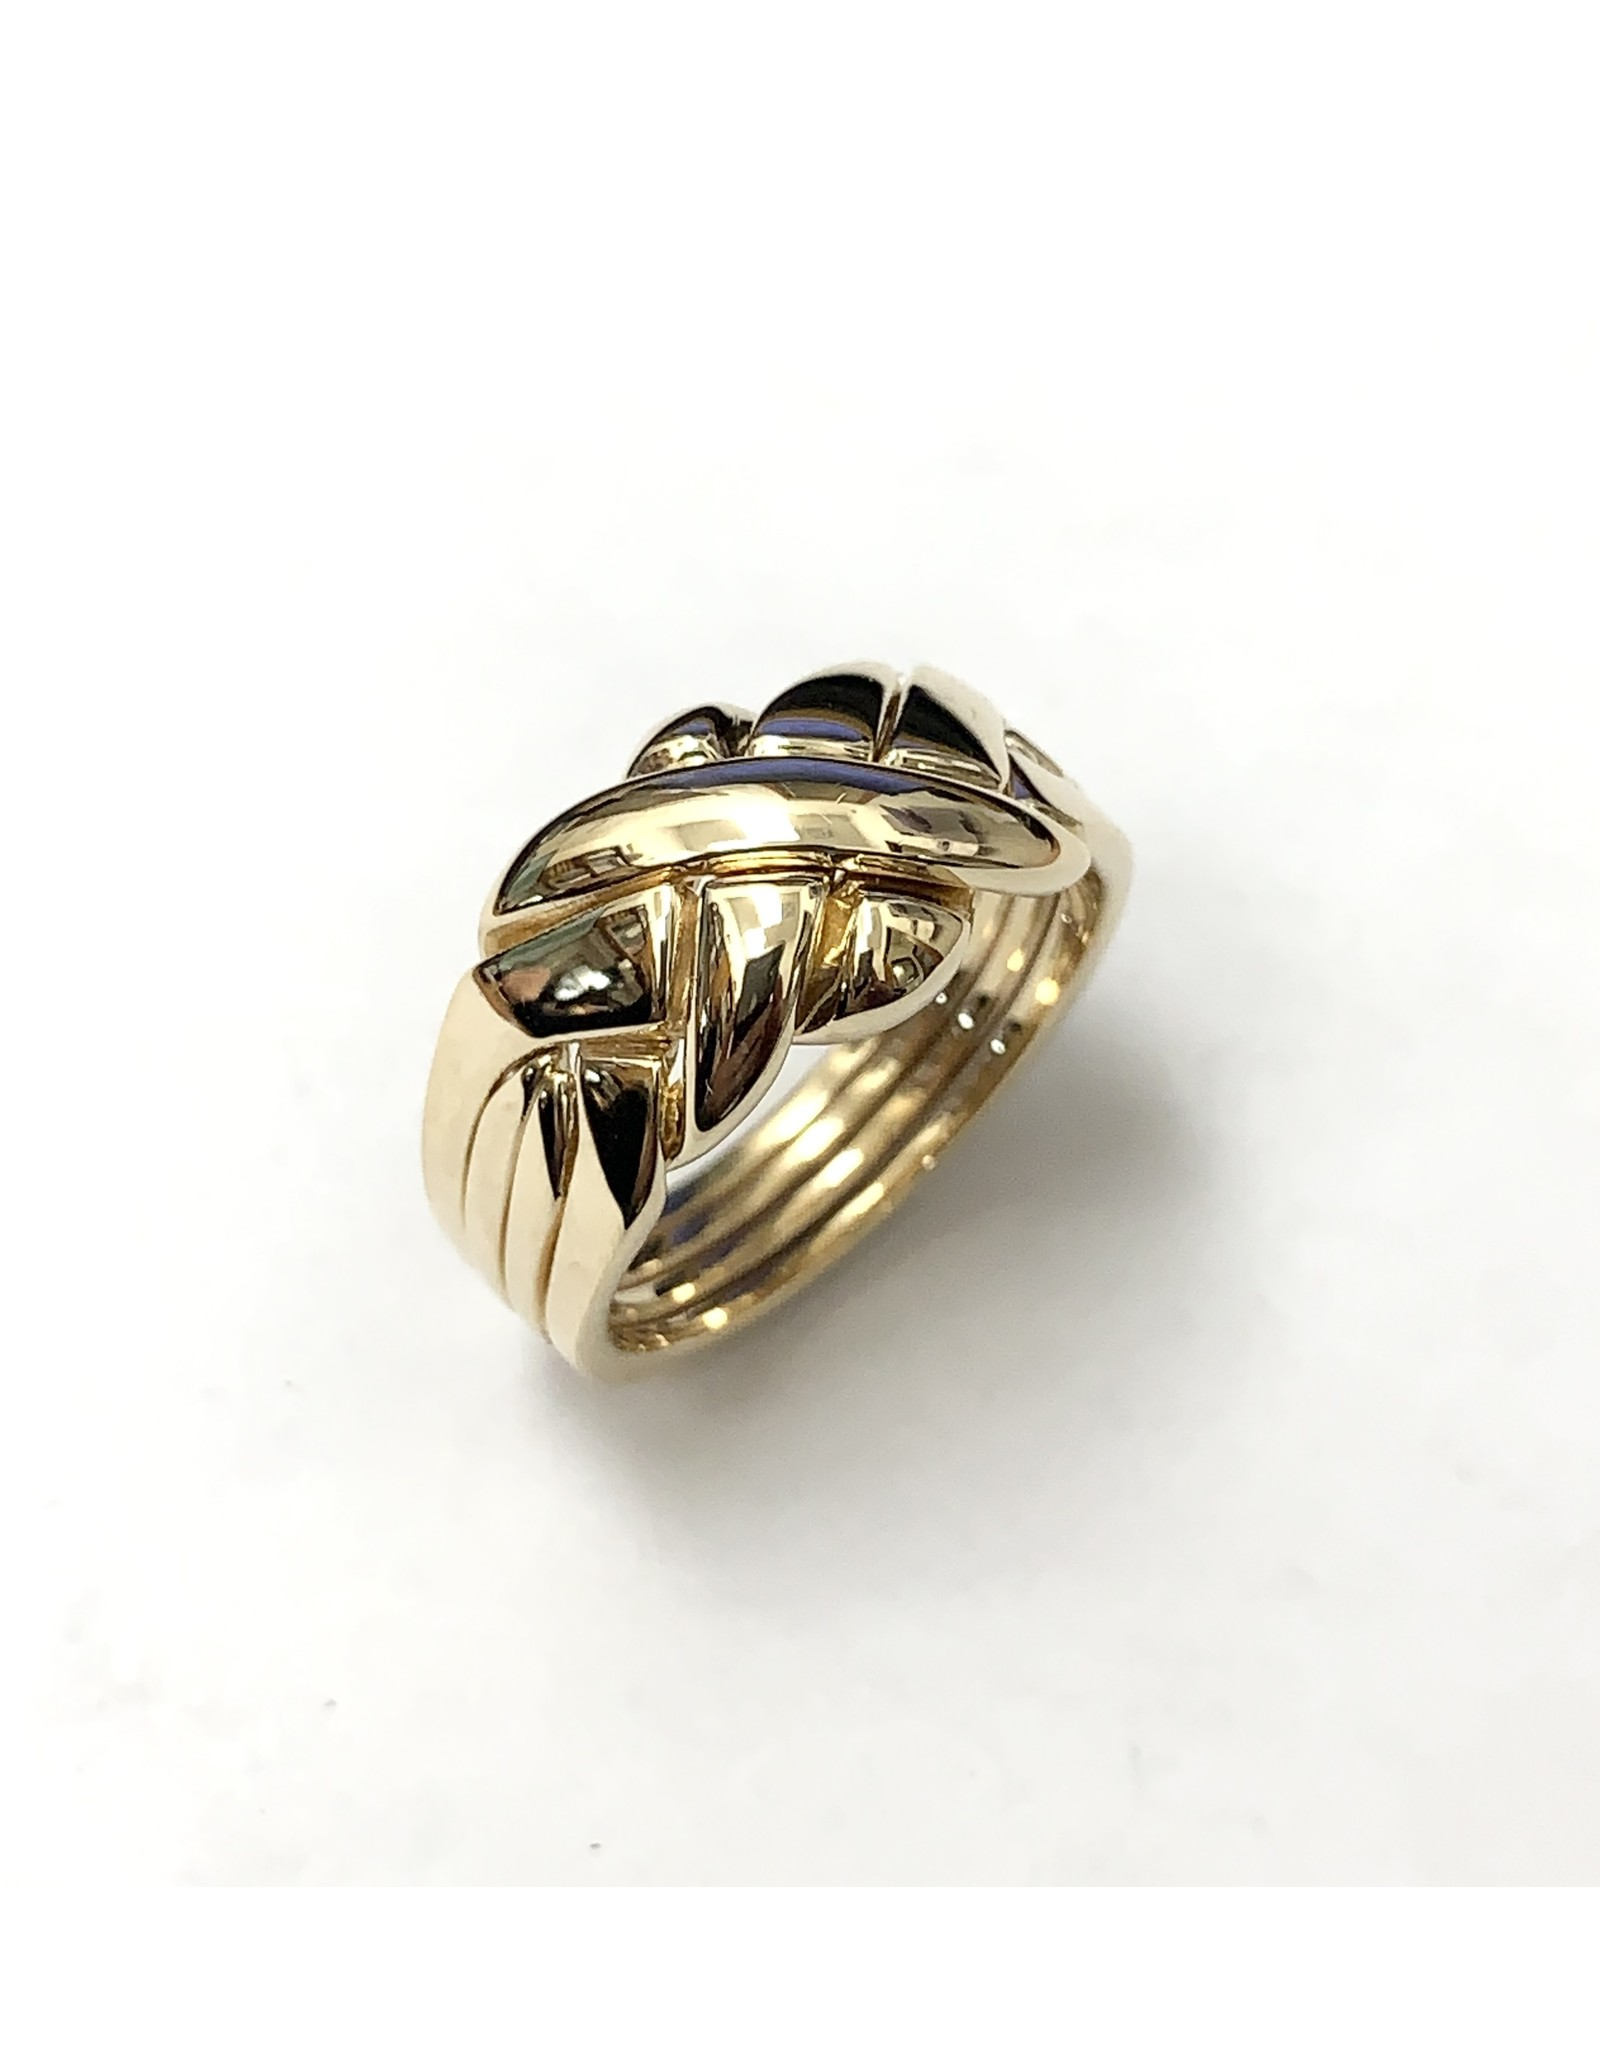 4-Band Puzzle Ring 10KY